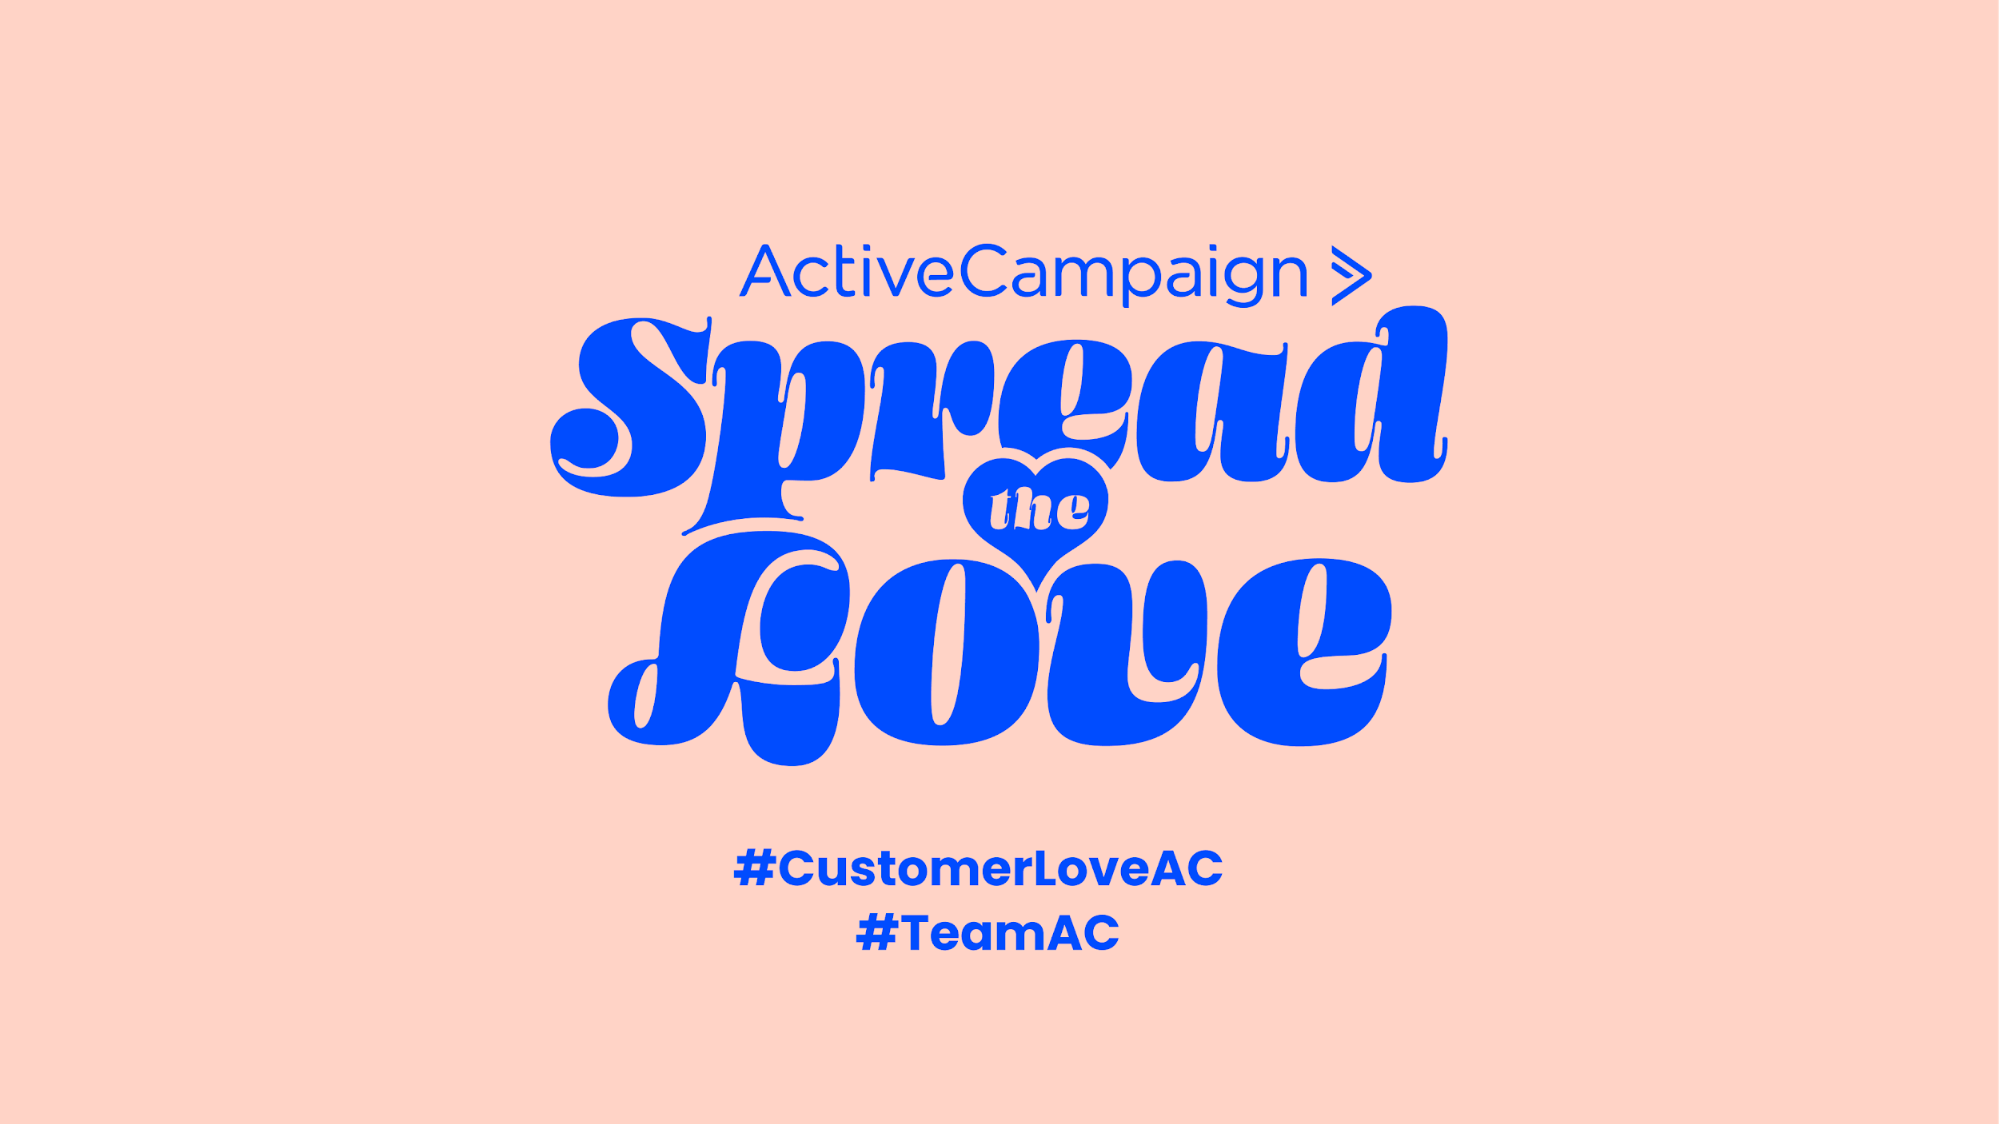 activecampaign customer love campaign